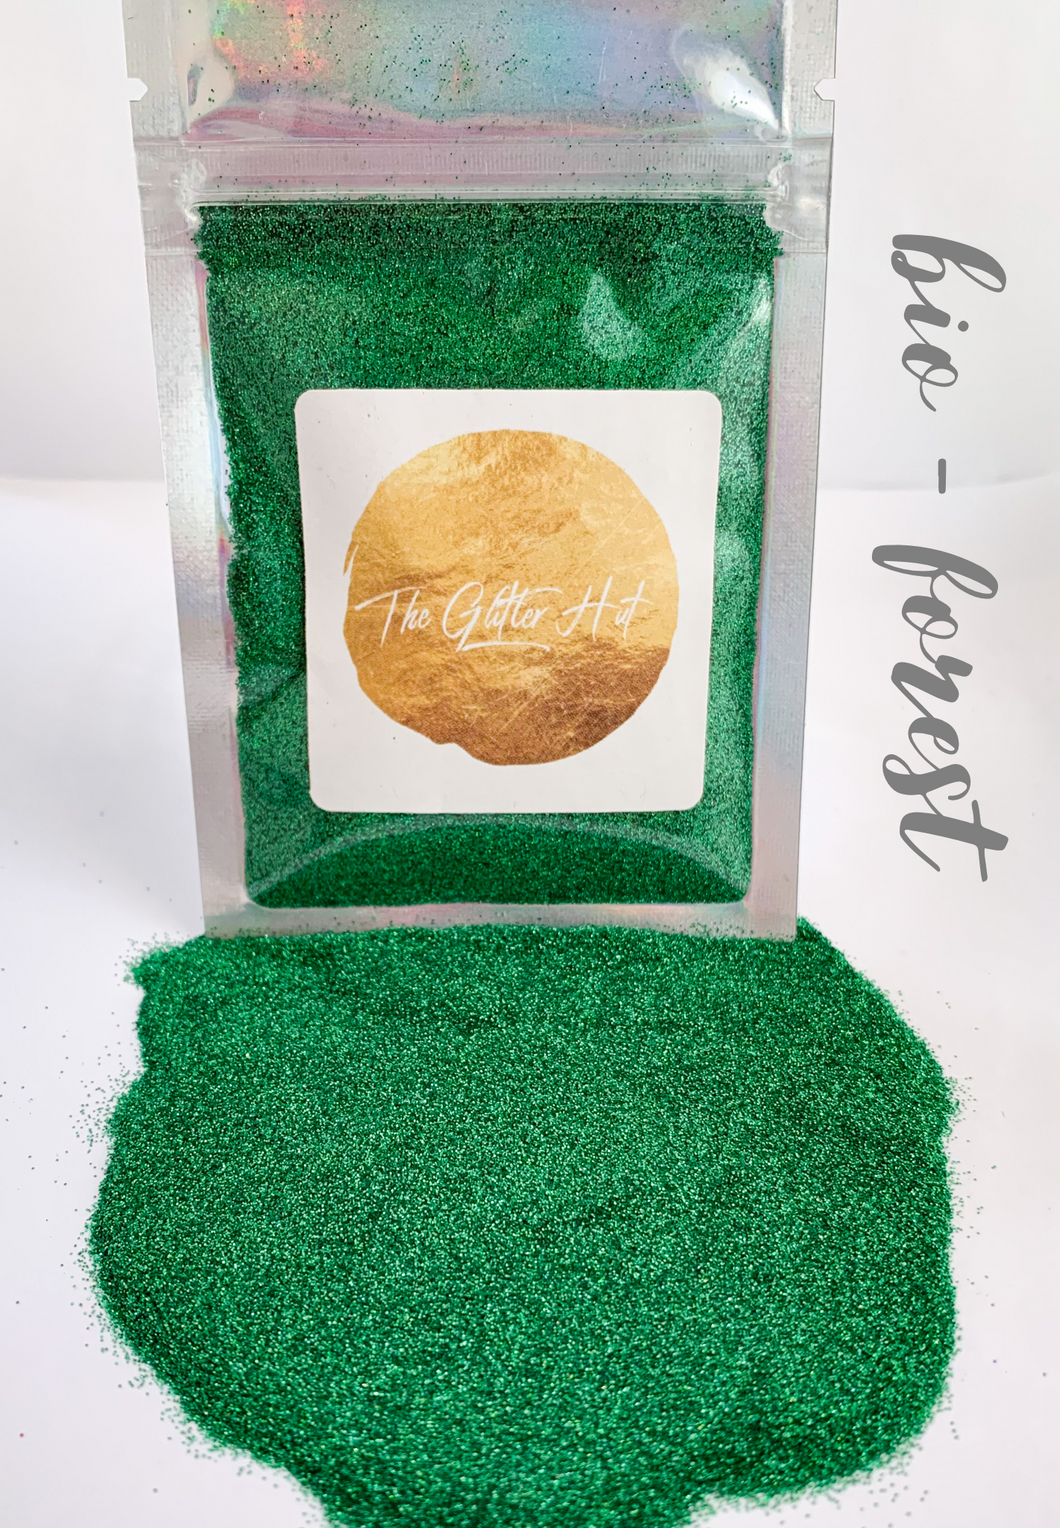 Biodegradable Fine 10g Glitter Bag - Forest